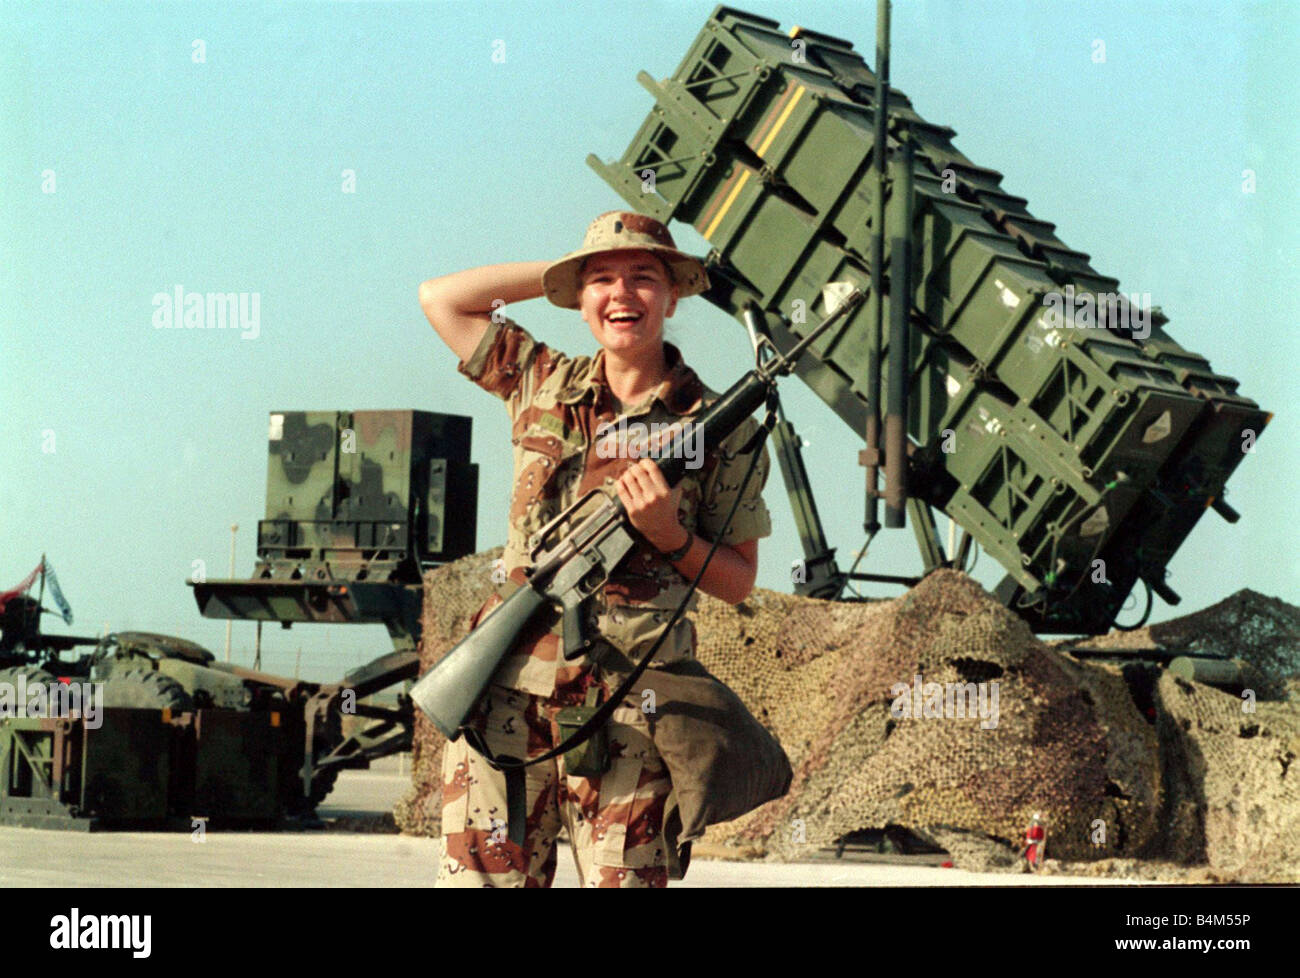 Gulf War Operation Desert Storm American Patriot defence missile system guarded by female soldier The new face of - Stock Image